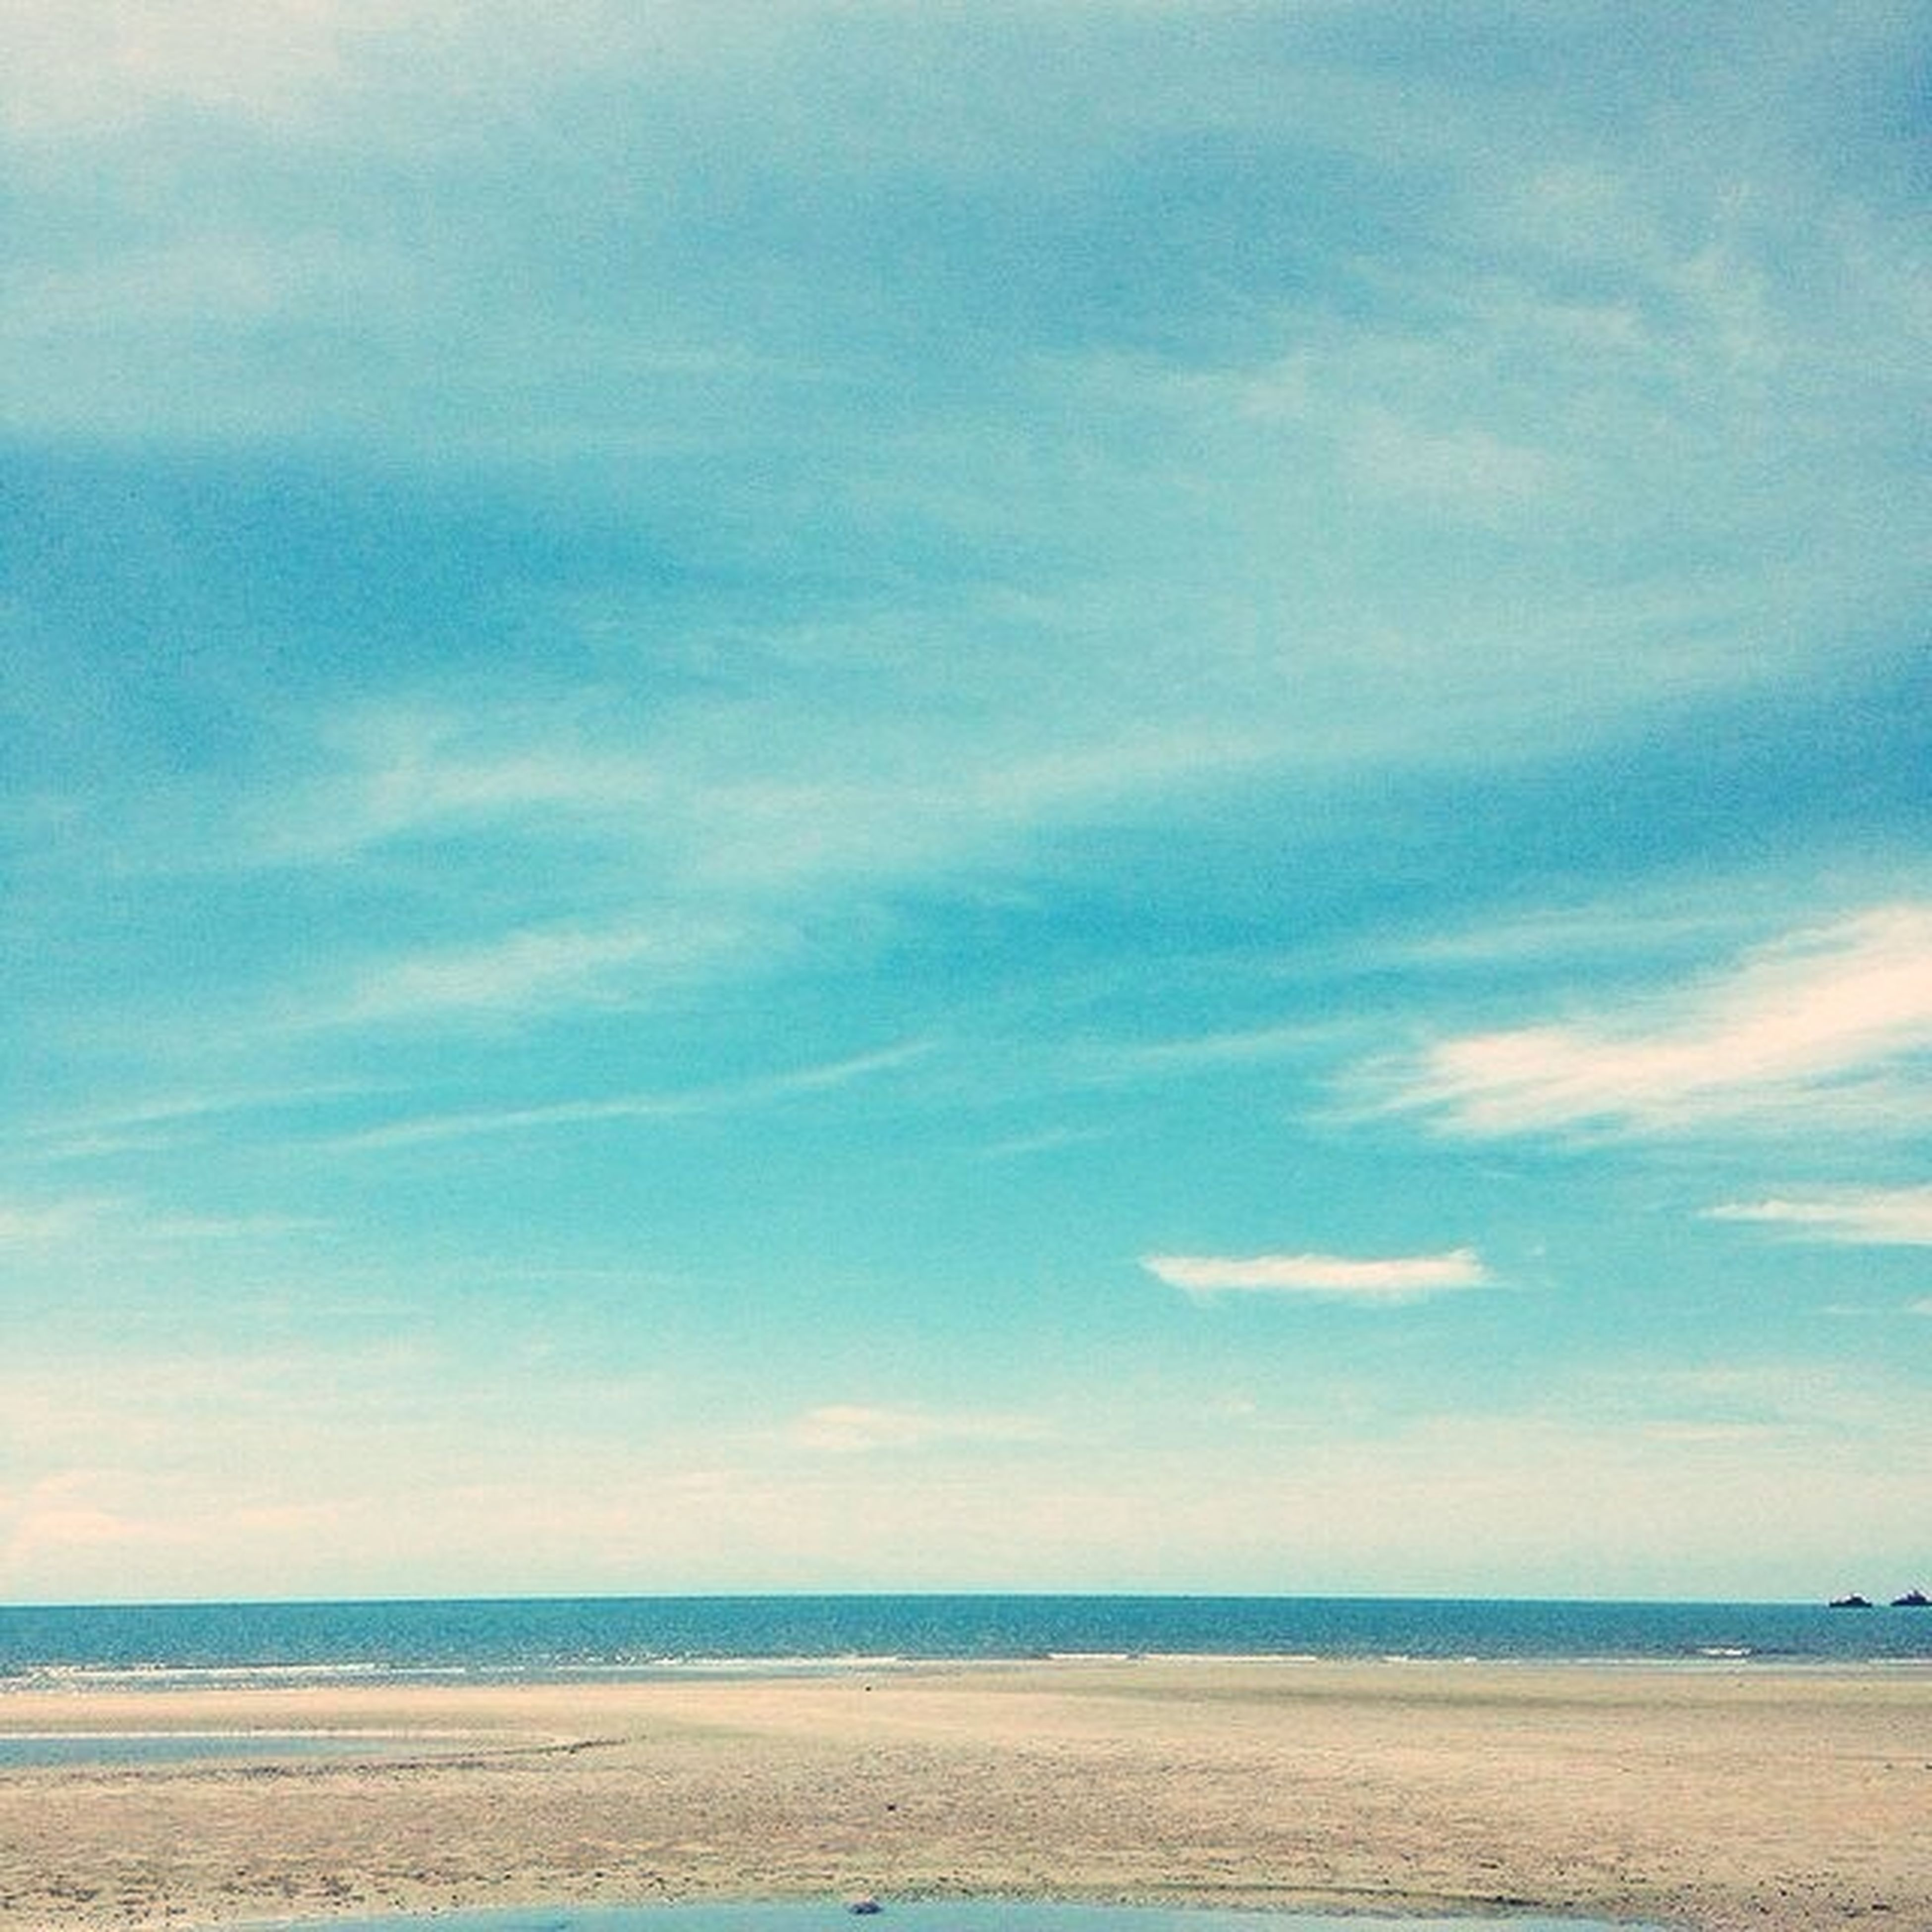 sea, horizon over water, beach, sky, tranquil scene, tranquility, scenics, water, beauty in nature, sand, shore, blue, nature, cloud - sky, cloud, idyllic, day, outdoors, remote, calm